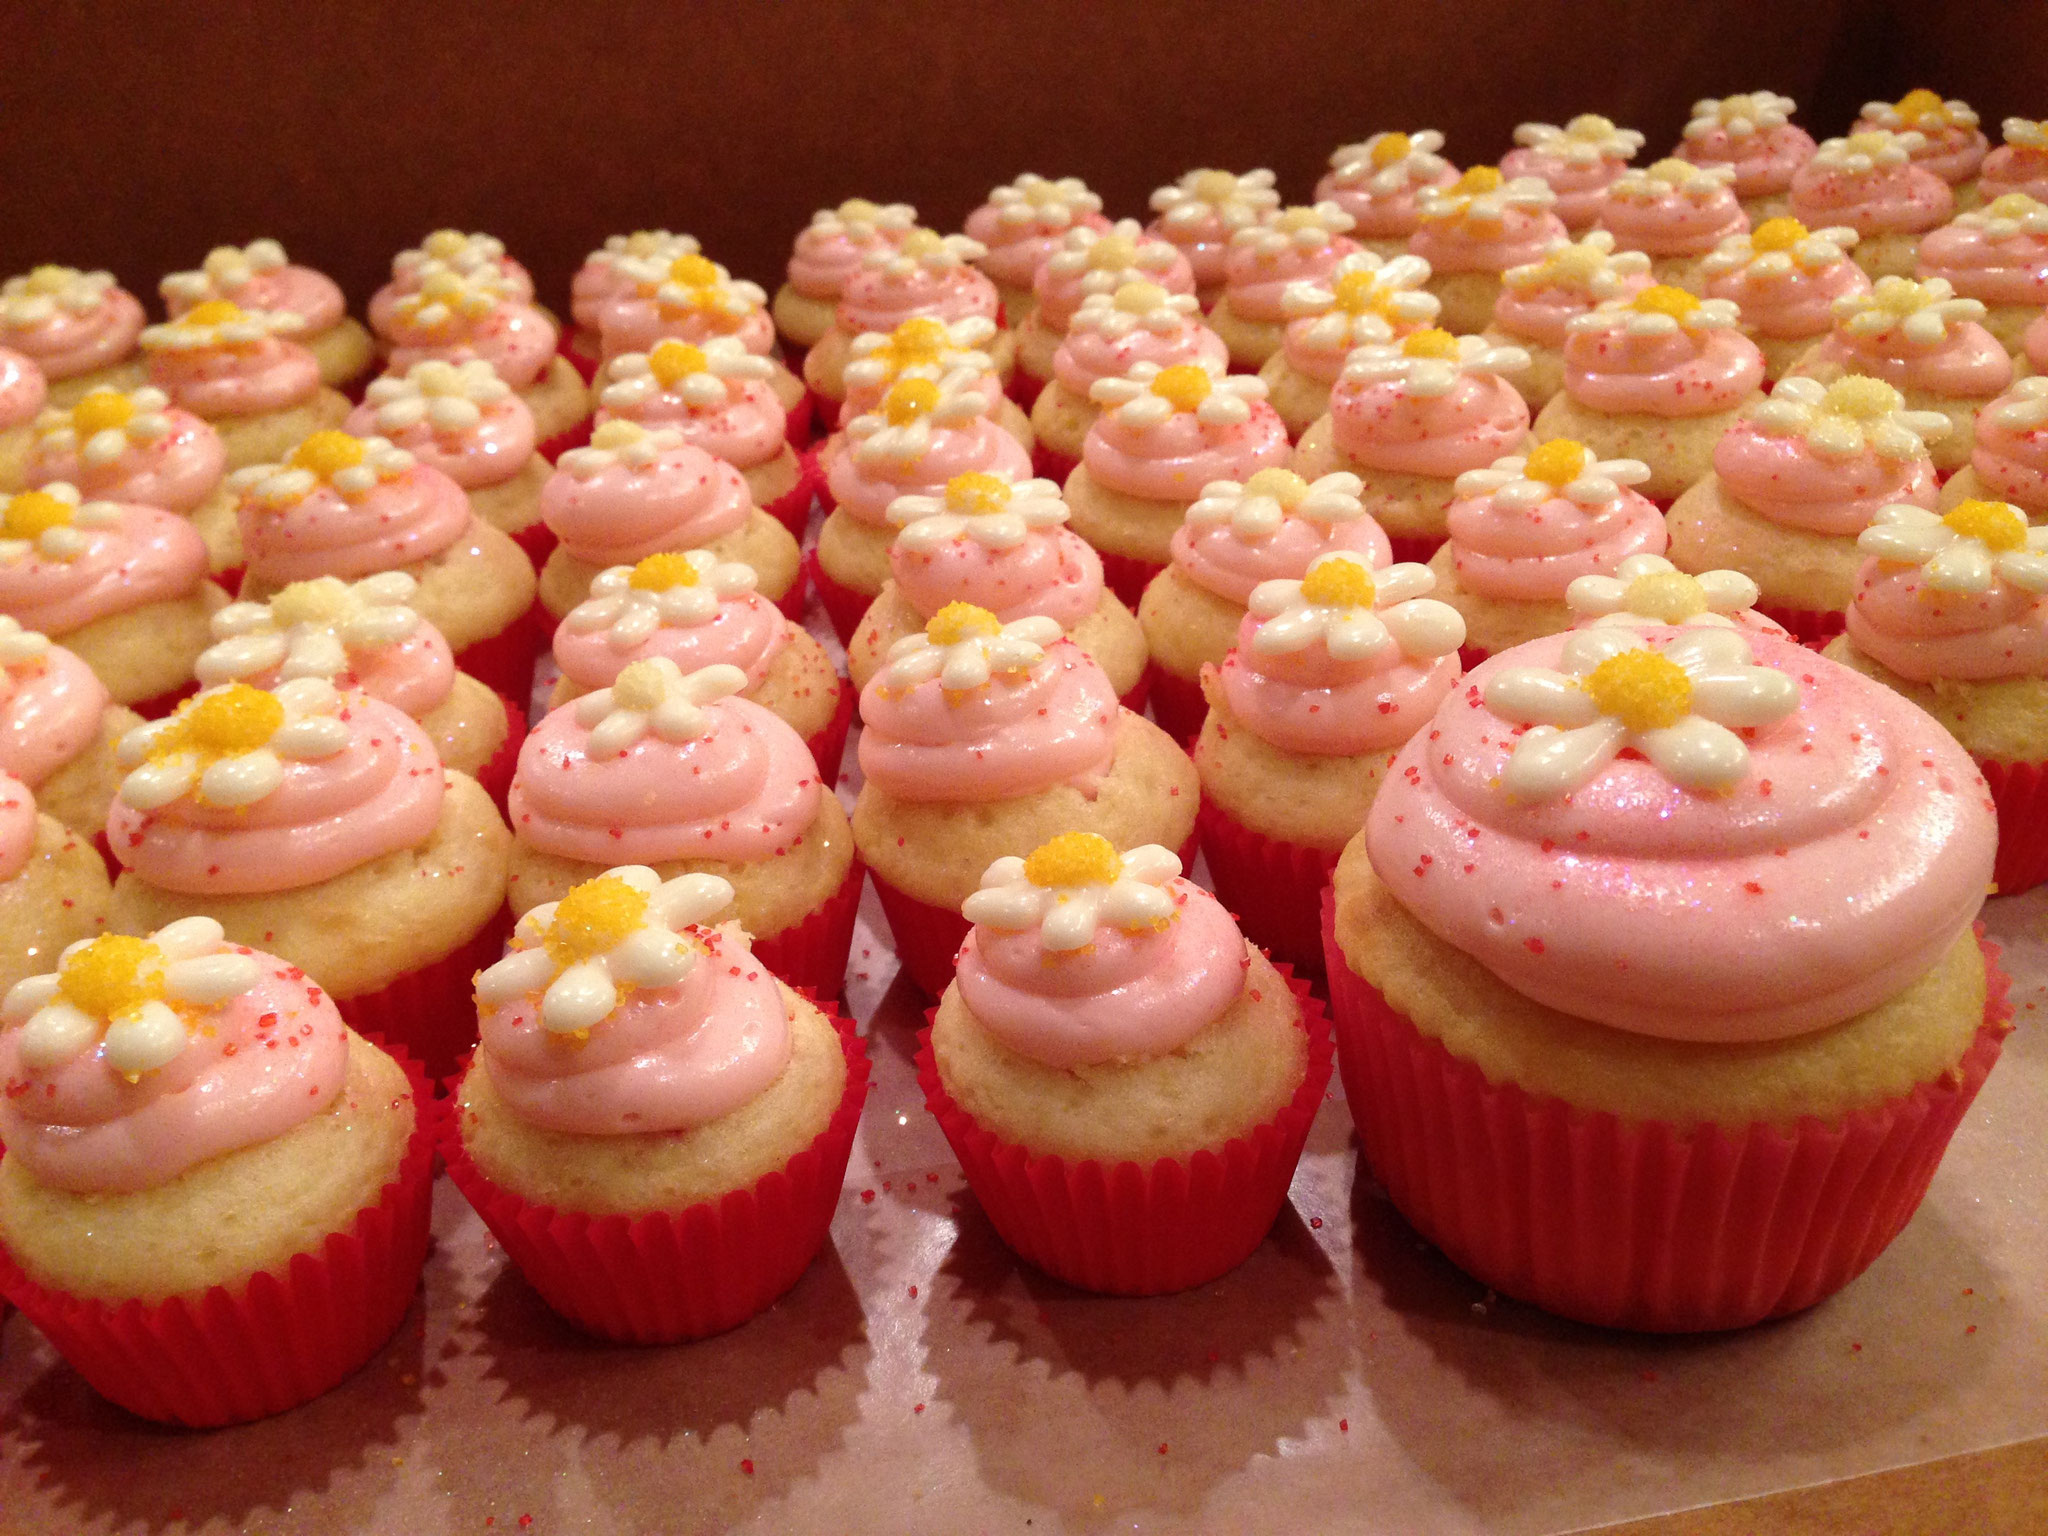 White cupcakes with strawberry frosting and additional decorations